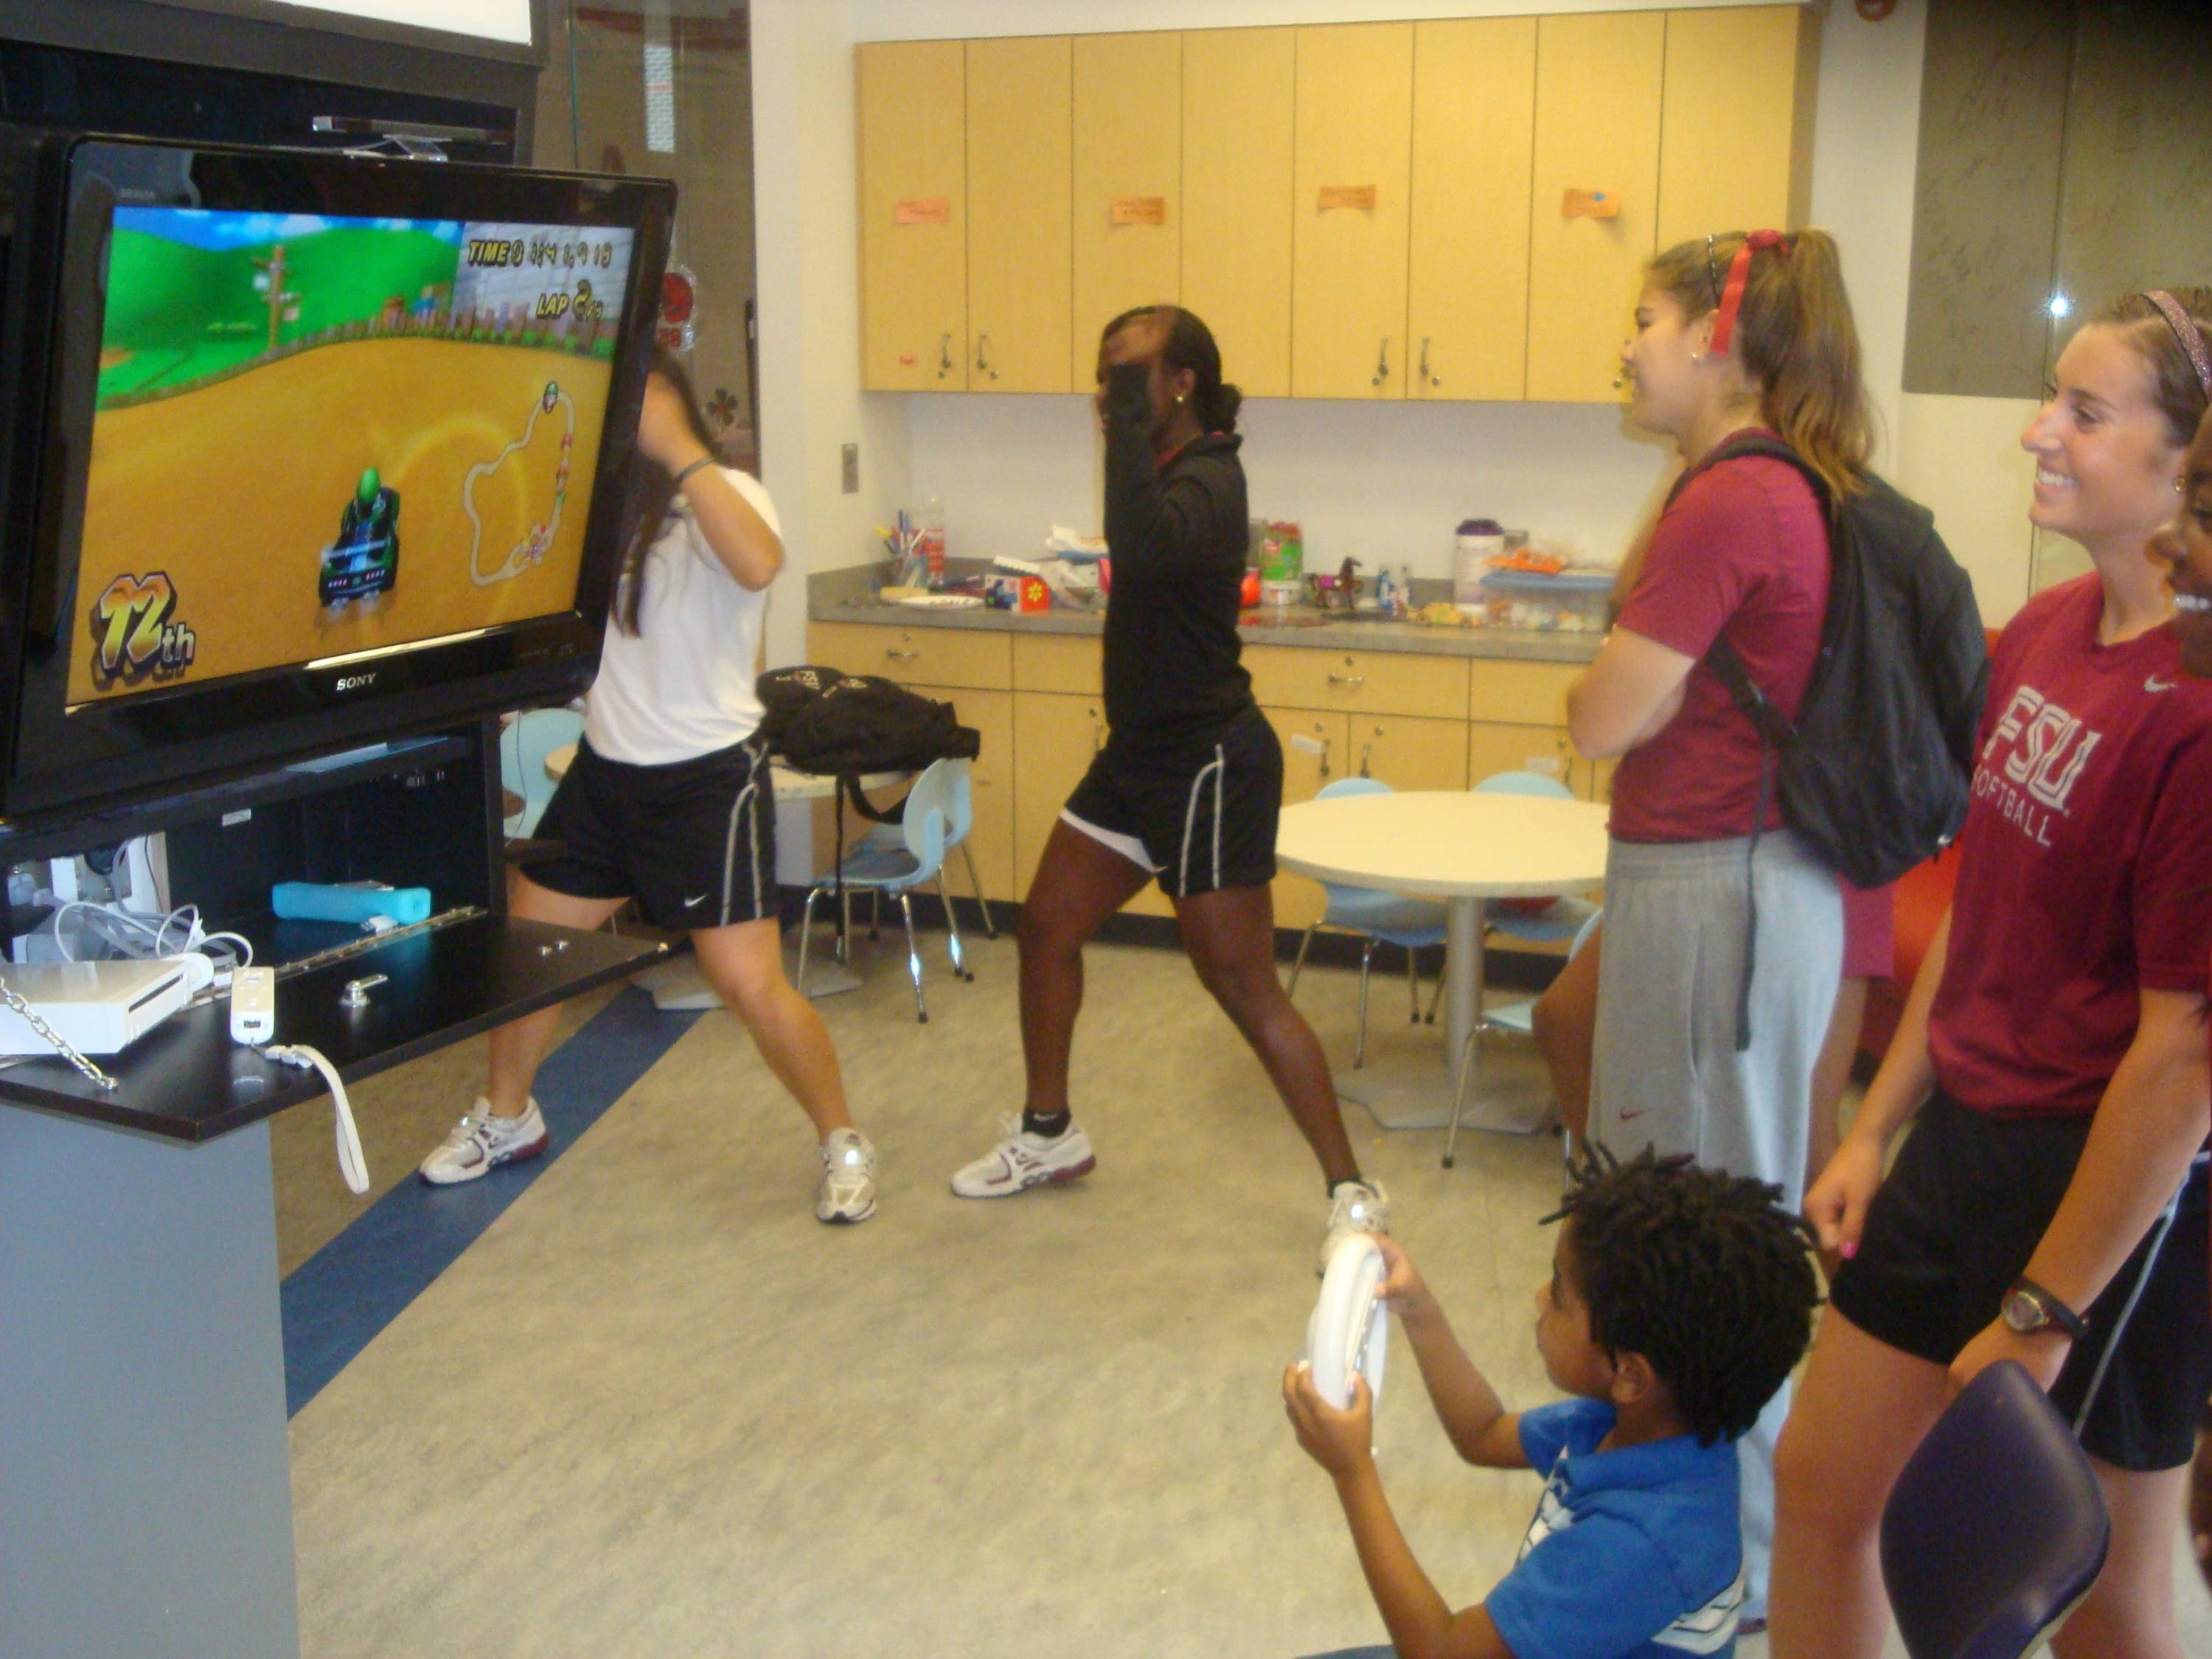 Fact: Mario Kart has changed over the years. Another Fact: Celeste Gomez and Morgan Bullock are trying really hard to move like the King of Pop himself